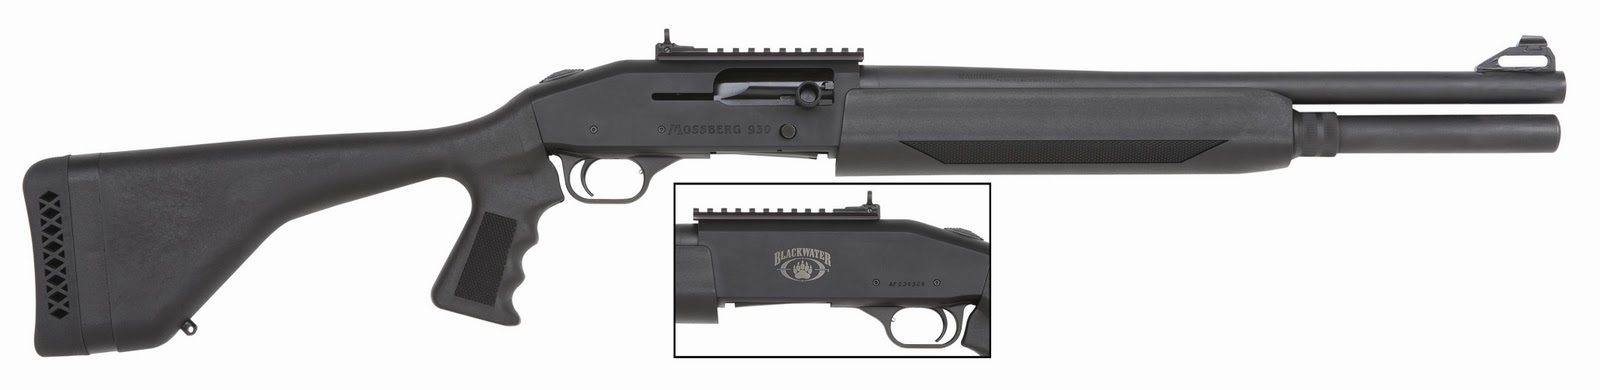 122ee745b9 Mossberg 930 SPX Blackwater Series.